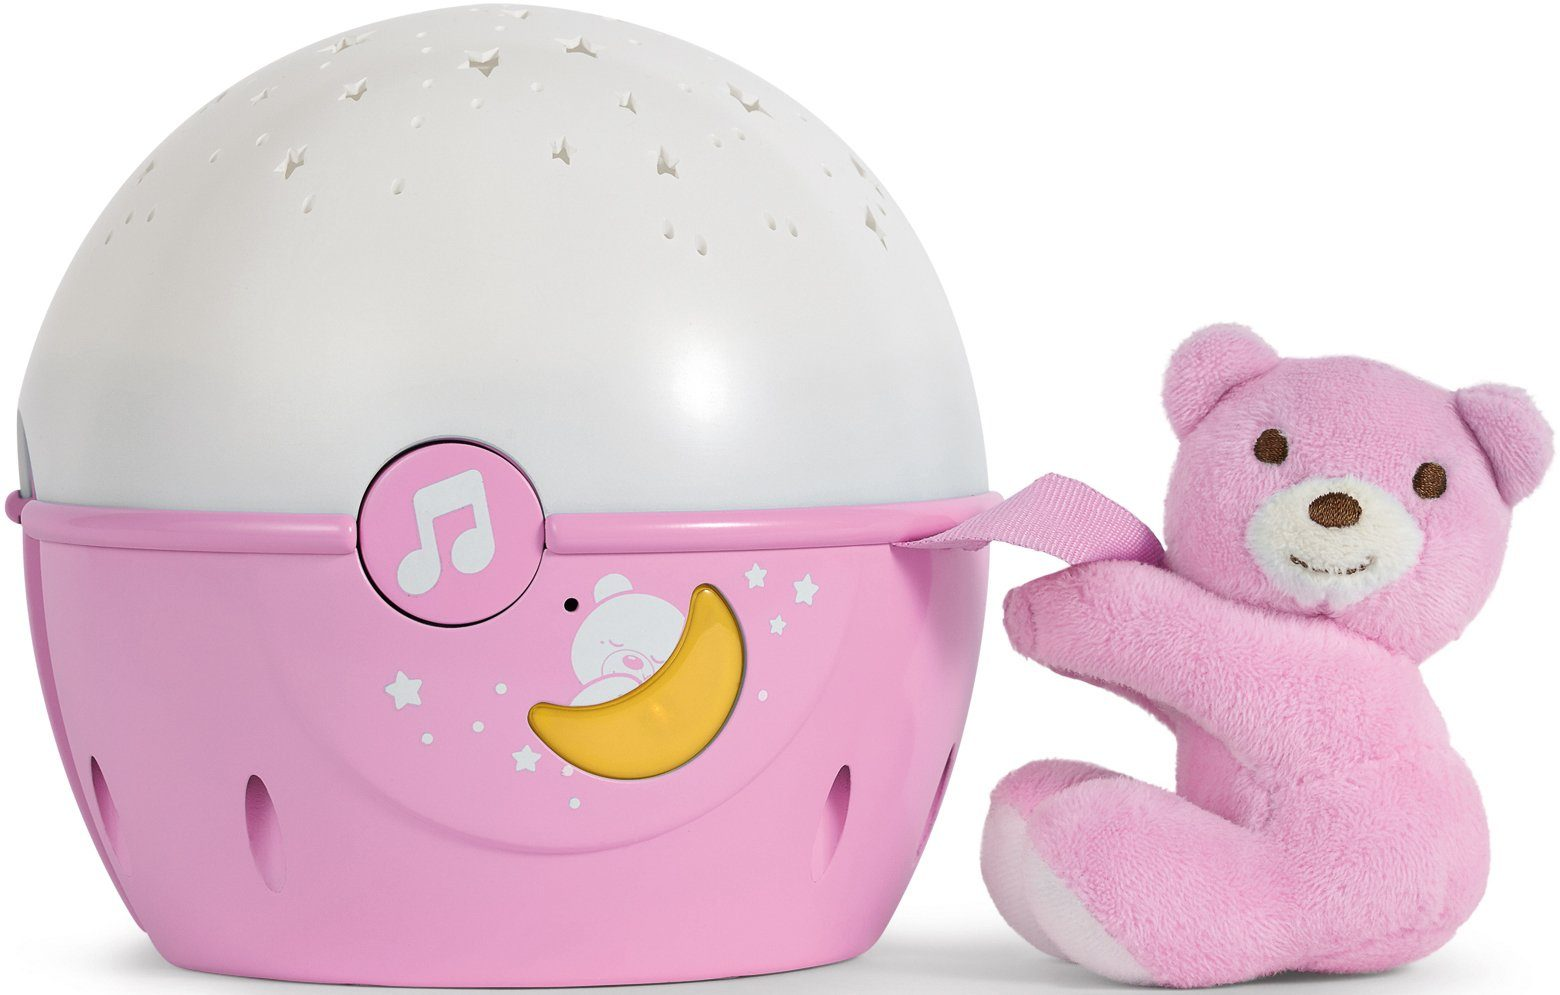 Chicco® 2in1 Projektor mit Soundfunktion, »First Dreams Next 2 Stars Nachtlicht, Rosa«